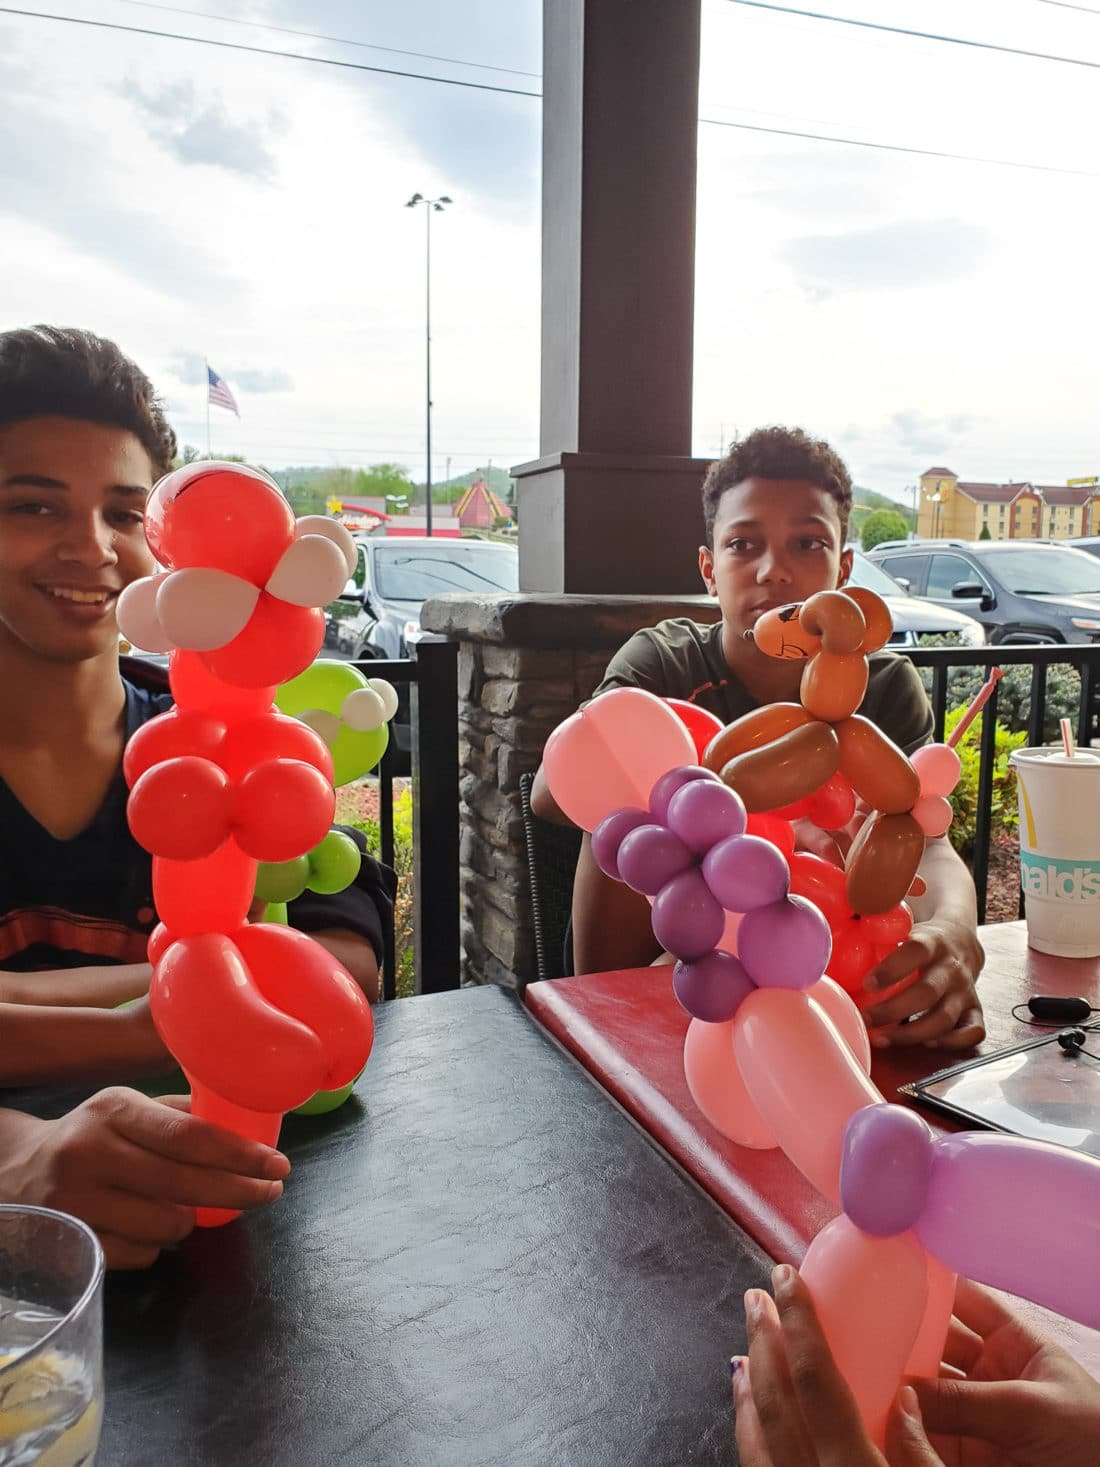 Big Daddy's Pizzeria Balloon Animals Teens. This is not your average pizza pie! At the heart of Big Daddy's is a 550 degree, wood-fired flame inside of a one-of-a-kind brick oven. Read all about why this freshly made pizza is my families go to pizza joint in Pigeon Forge, TN.